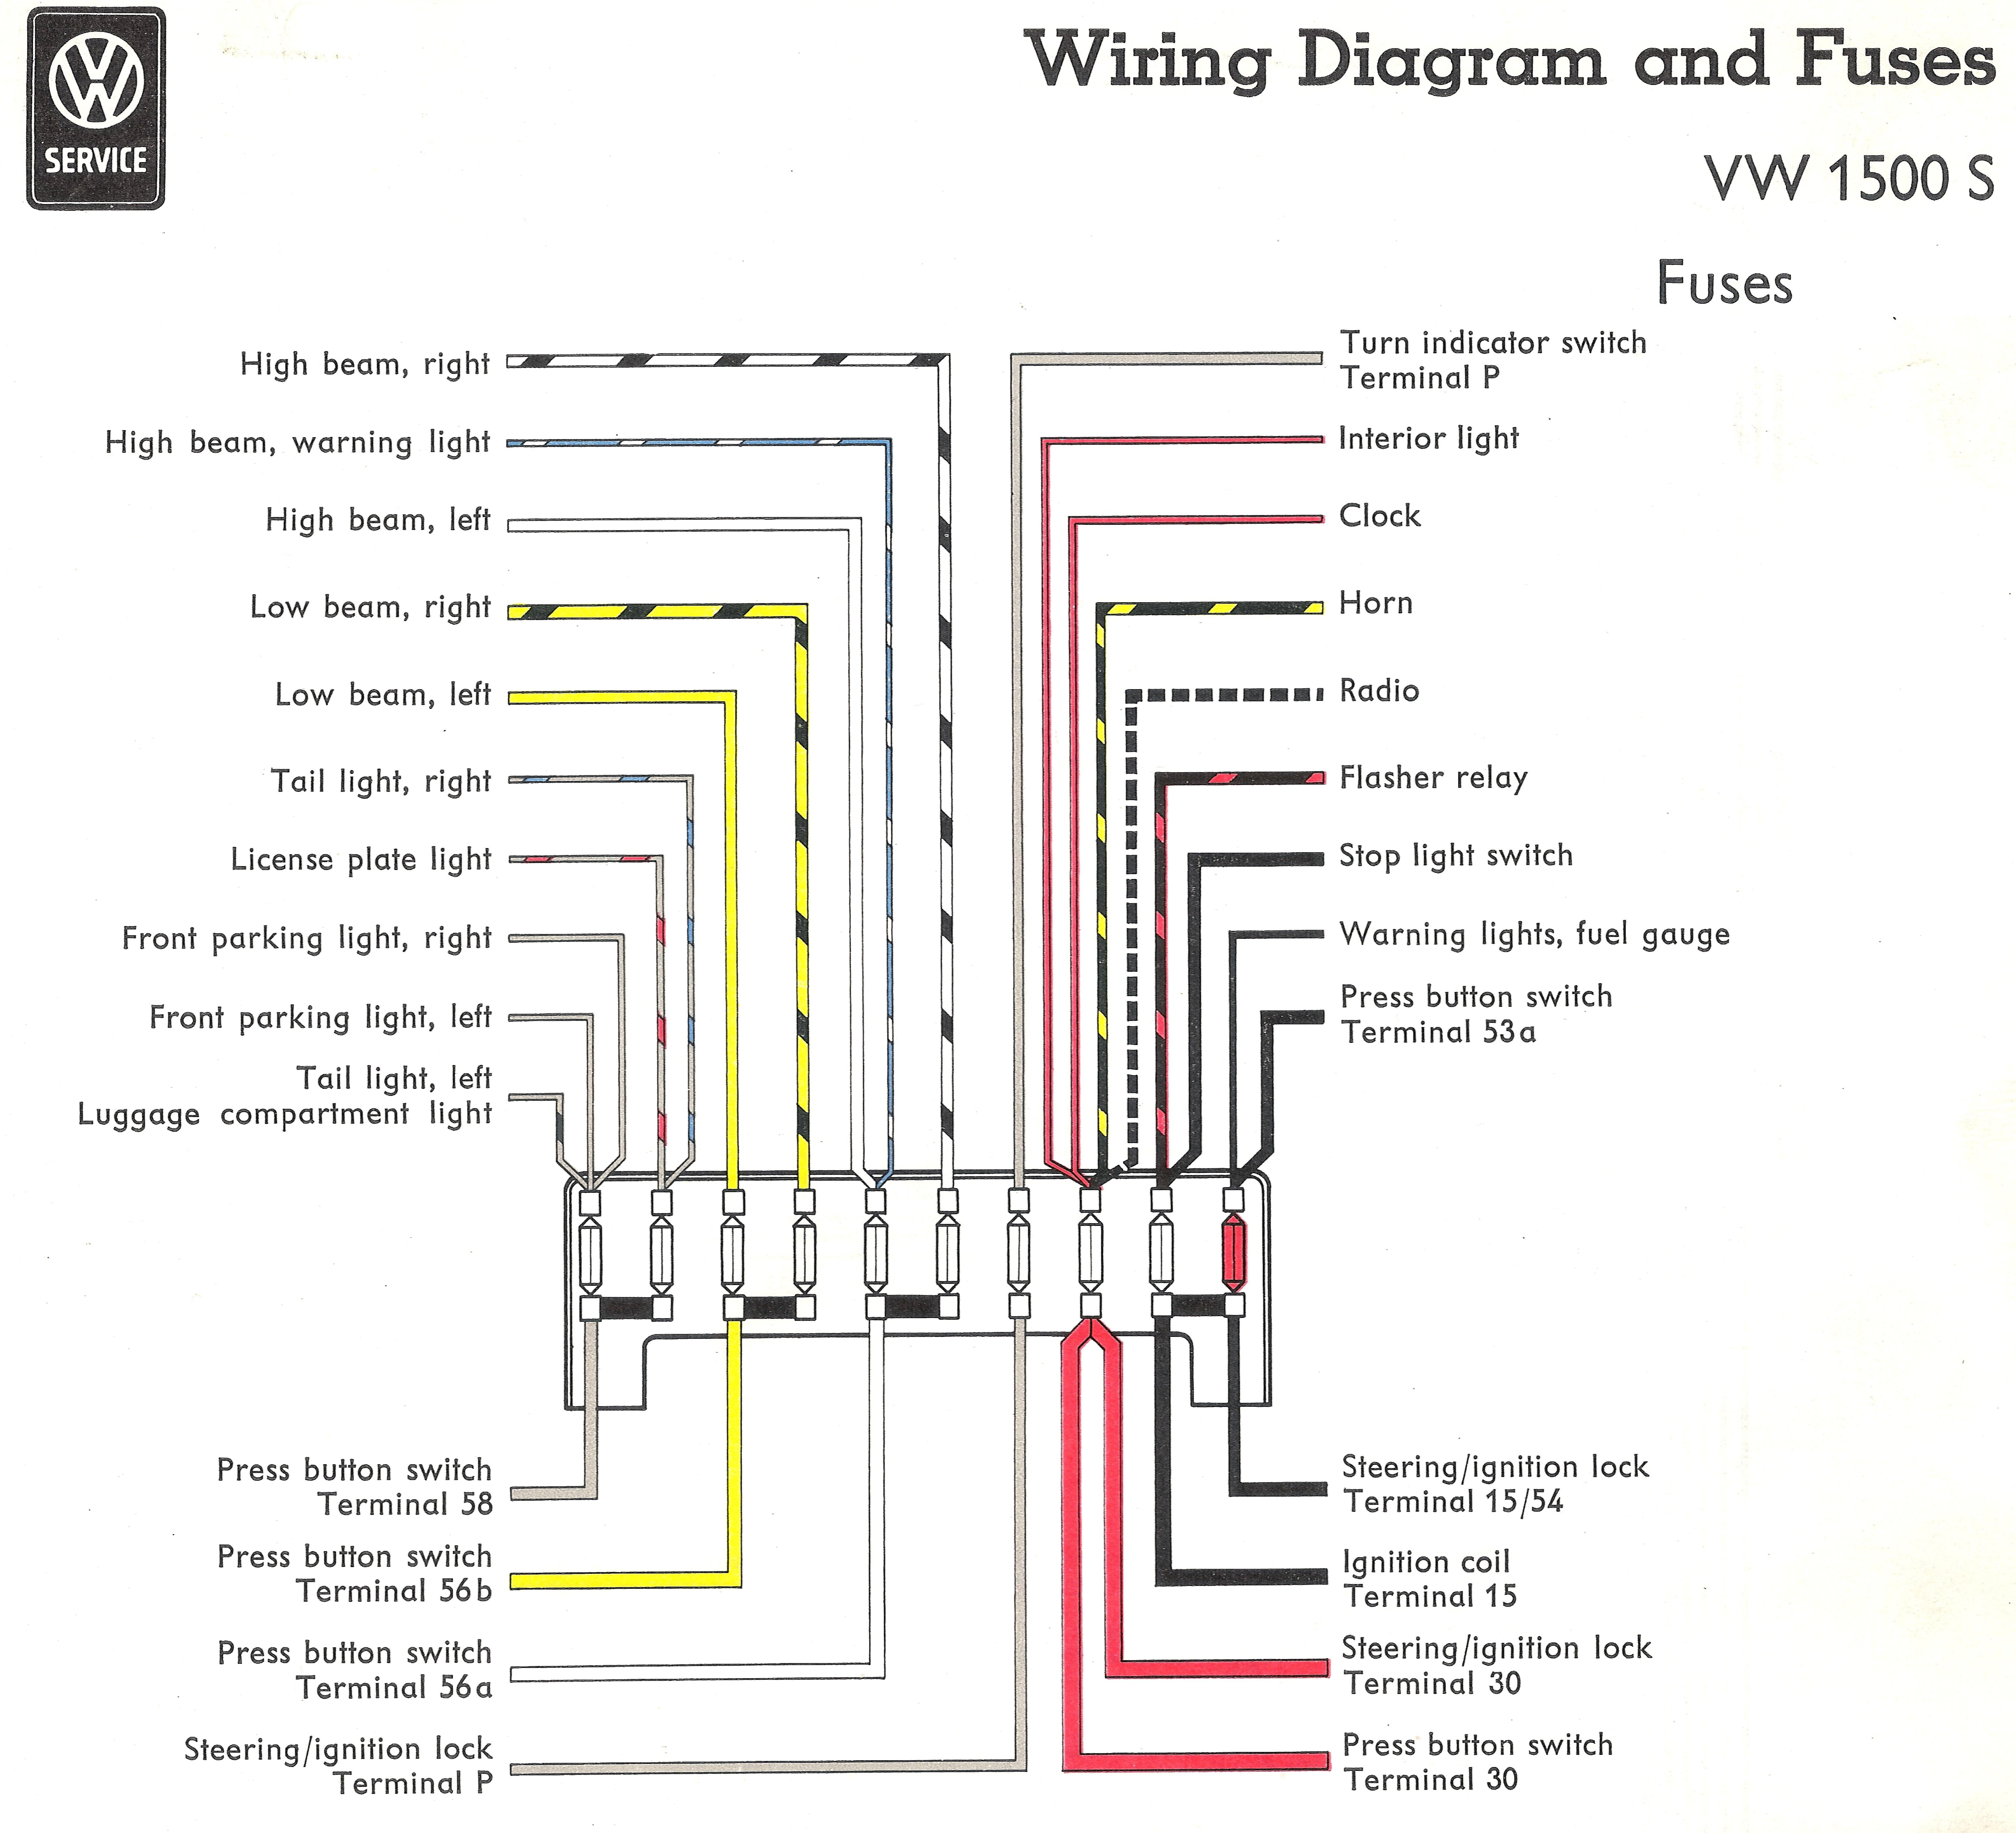 Vw Passat Engine Parts Diagram Wiring And Fuses Info Part Circuit Maker Line Riviera Auto Specification 3 Of Related Post